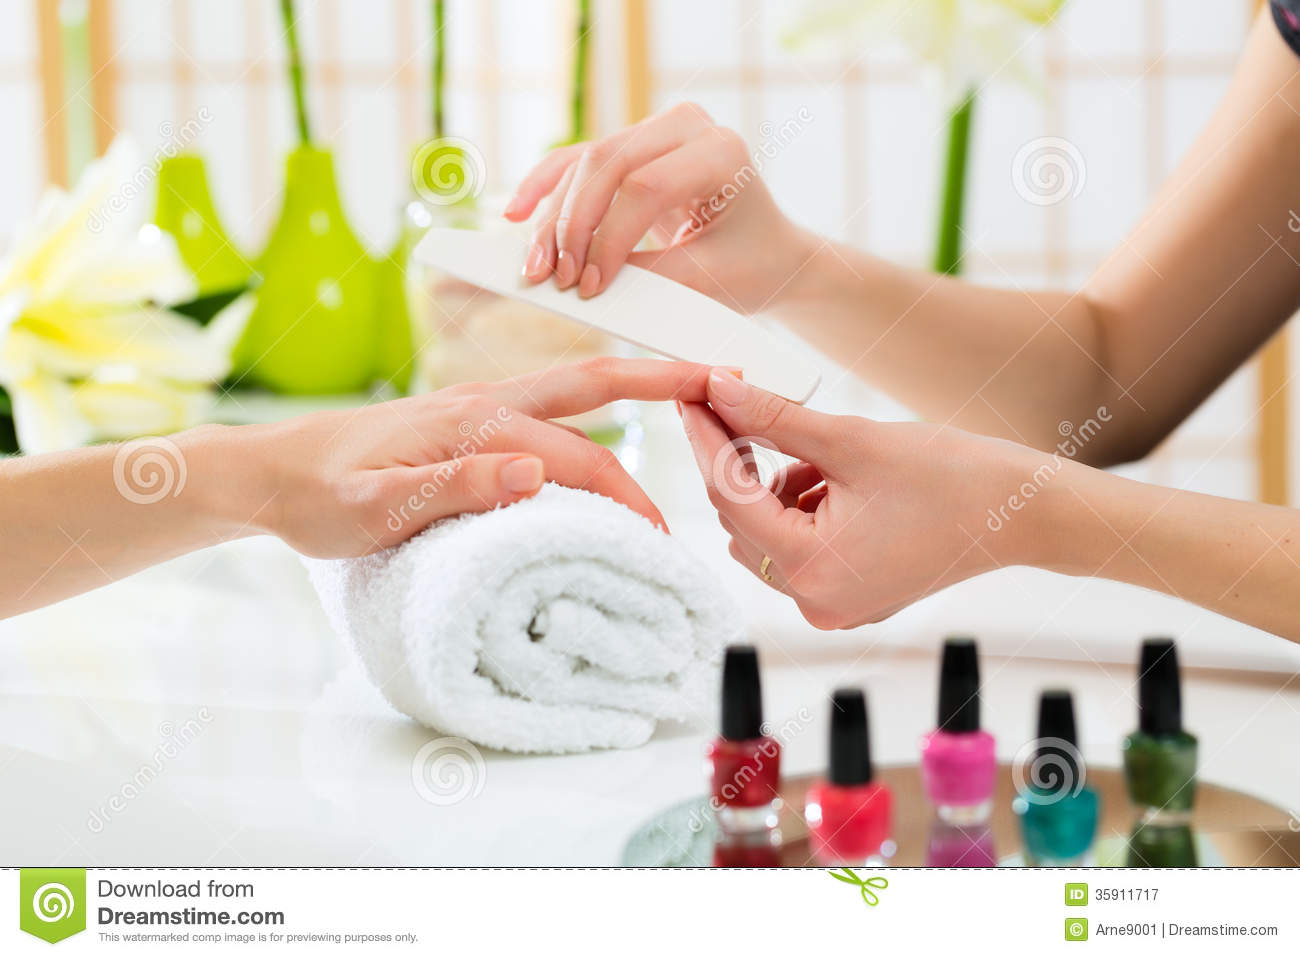 Woman In Nail Salon Receiving Manicure Stock Image Image Of Polishing Nails 35911717